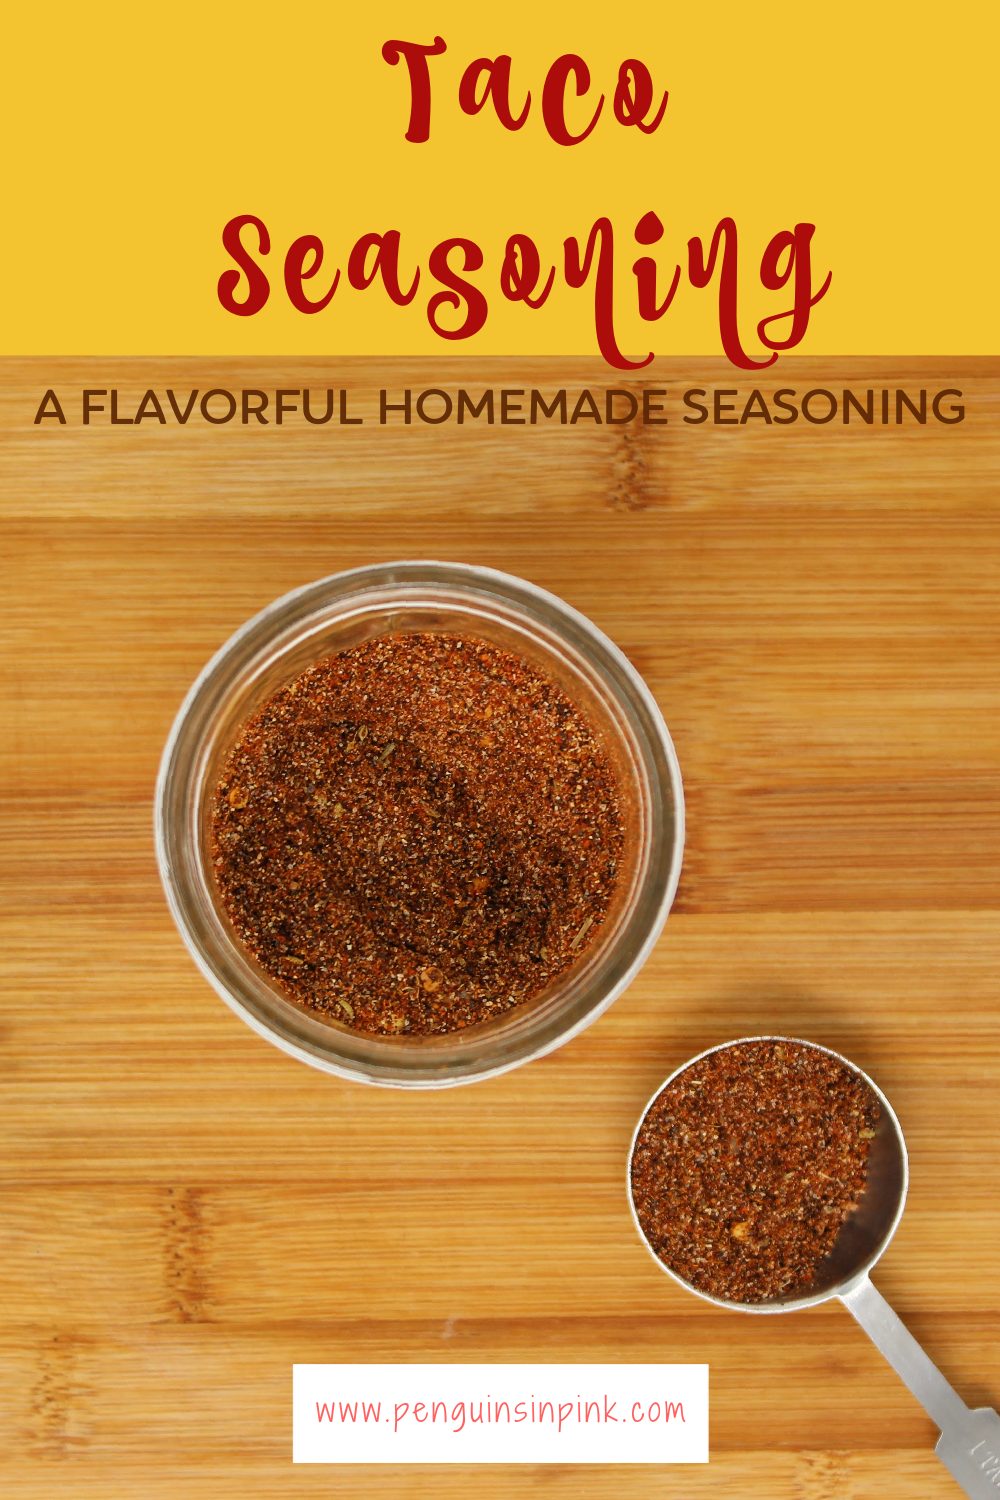 A delicious, flavorful, homemade version of taco seasoning mix. Homemade taco seasoning is a mix of chili powder, cumin, black pepper, paprika, and a few other herbs.